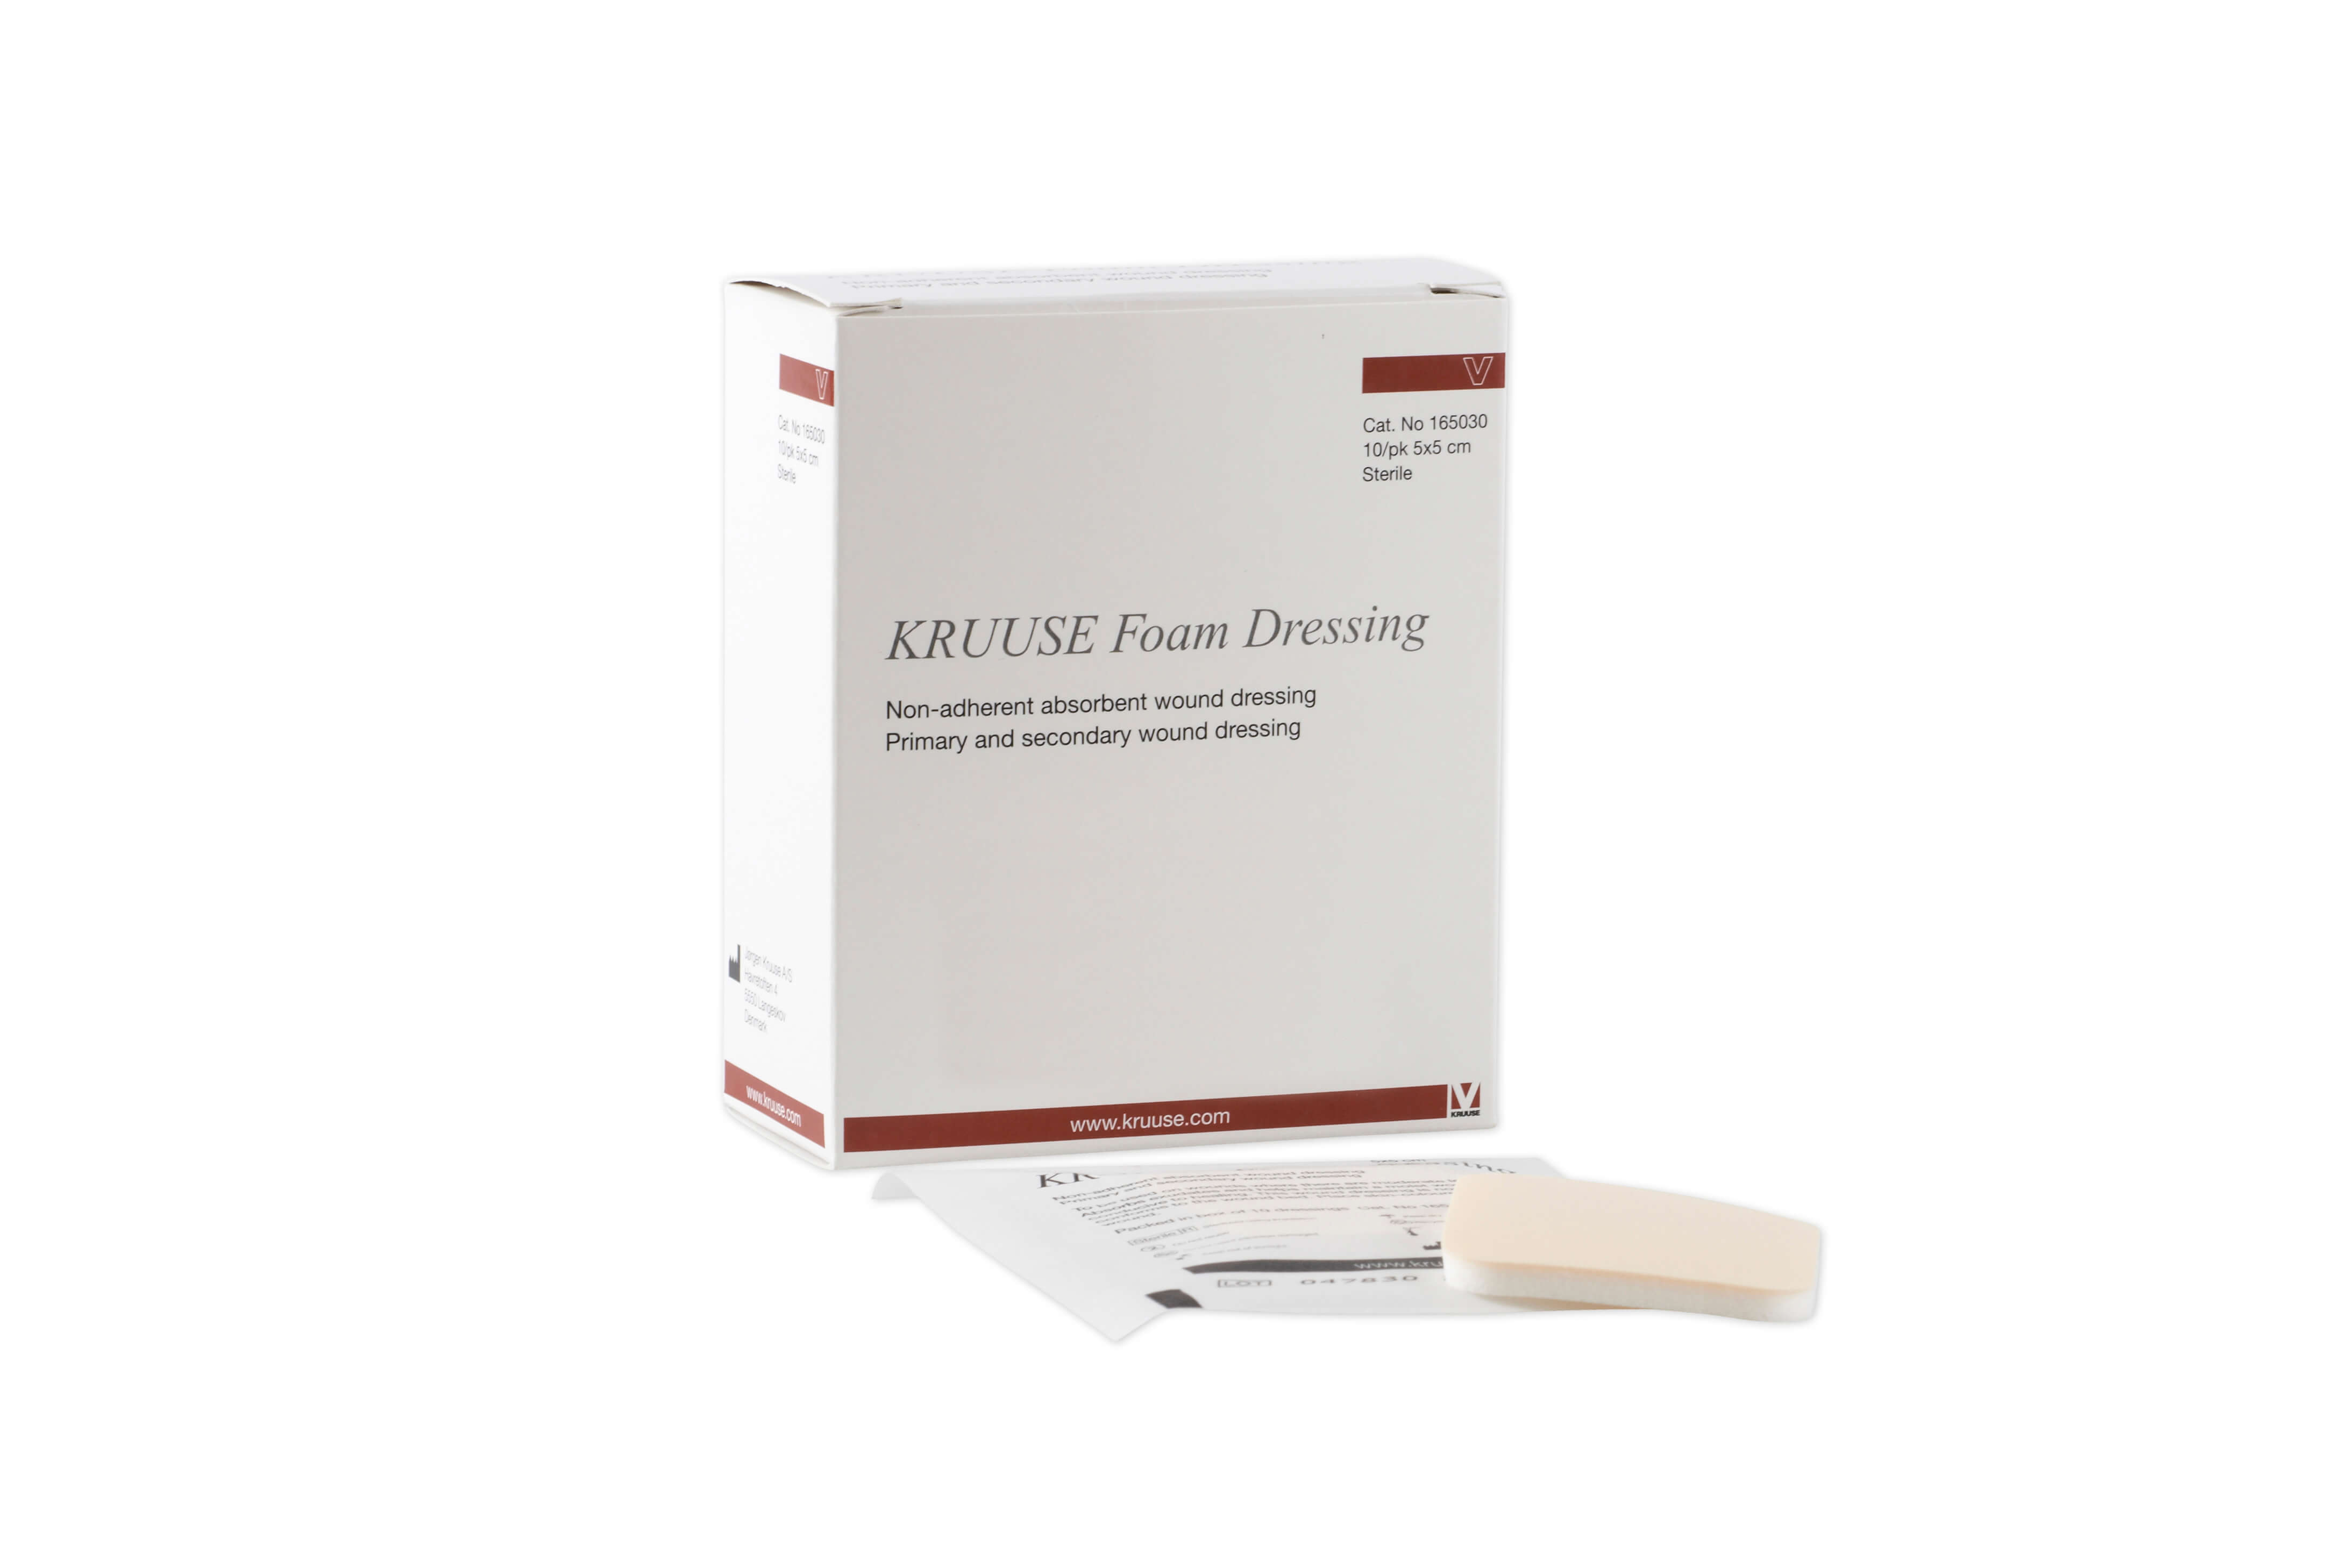 Kruuse Foam Dressing